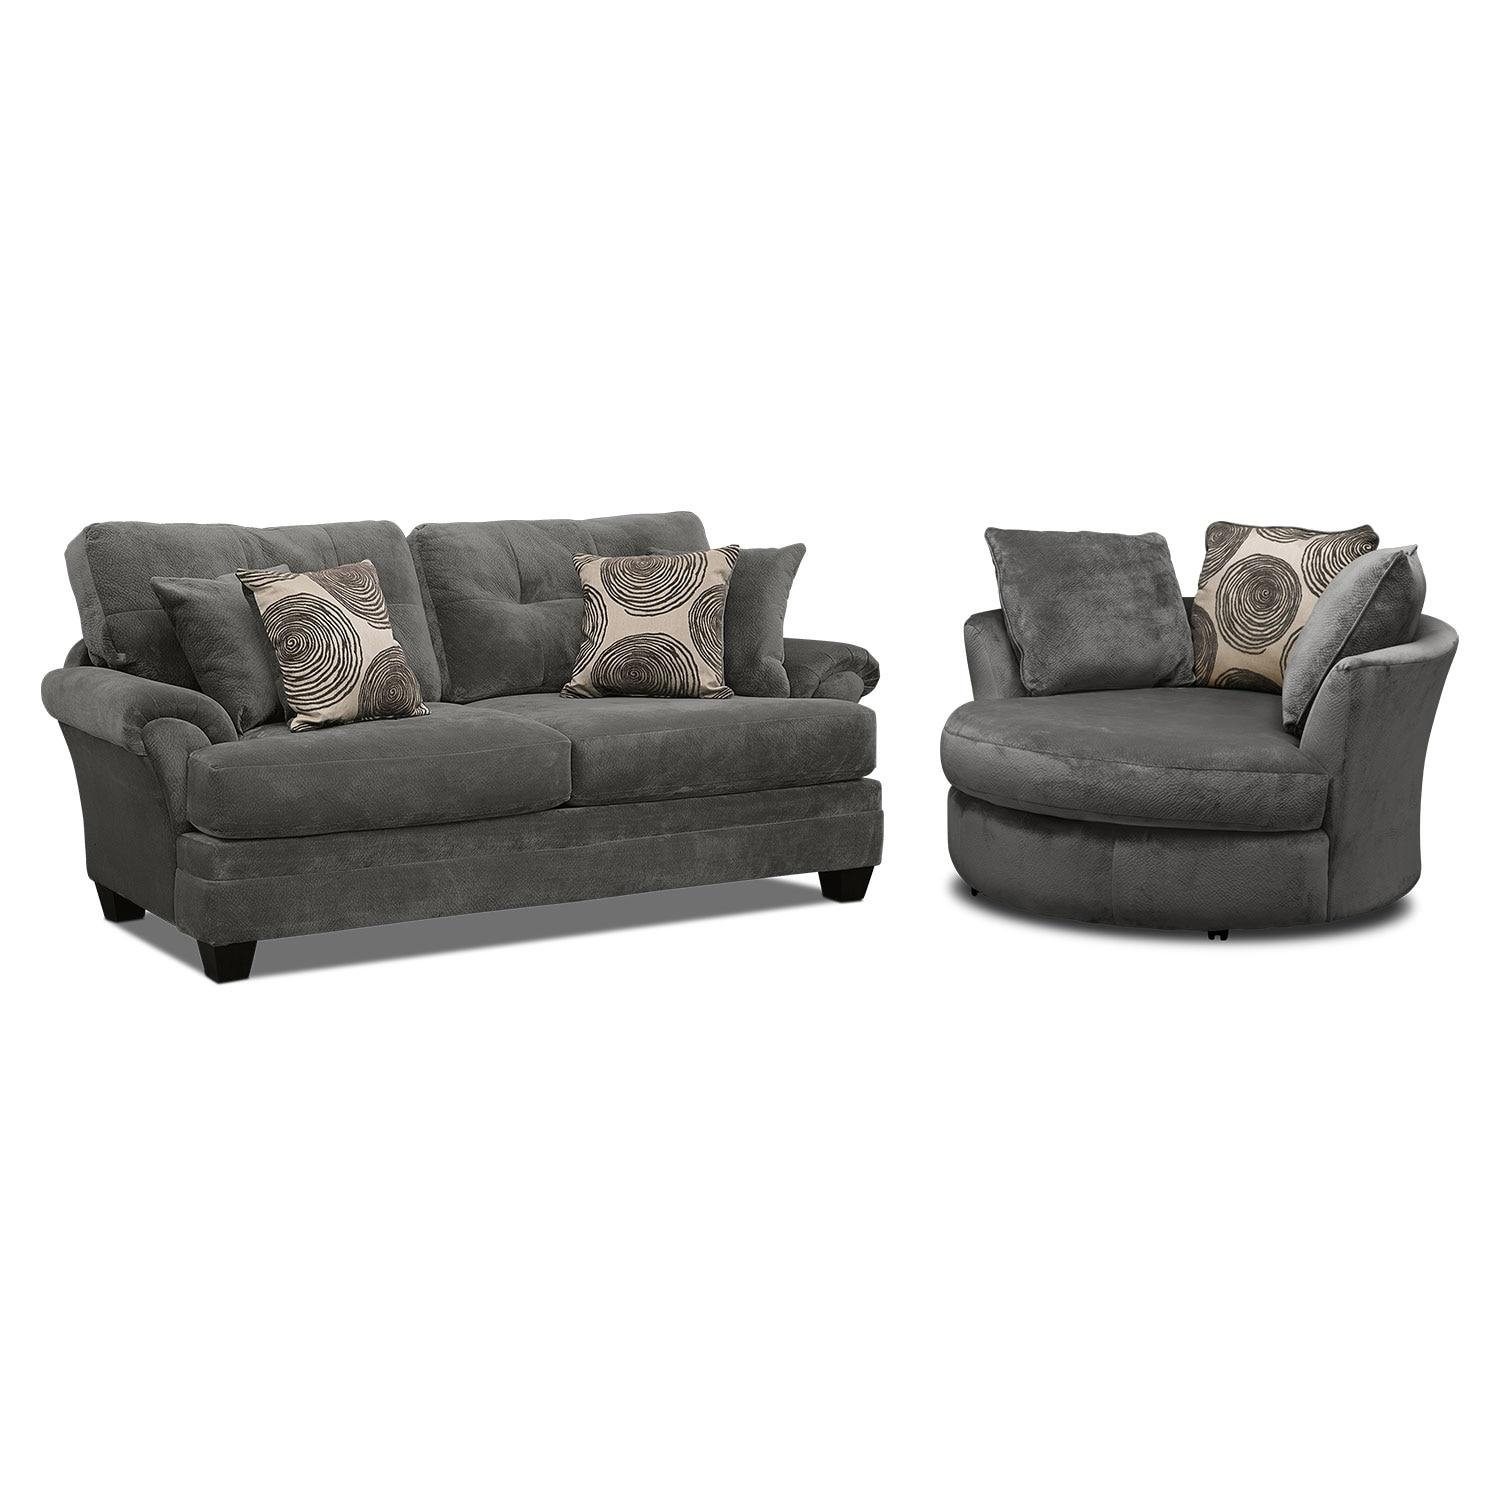 Cordelle Sofa, Loveseat And Swivel Chair Set – Gray | Value City For Swivel Sofa Chairs (View 16 of 20)